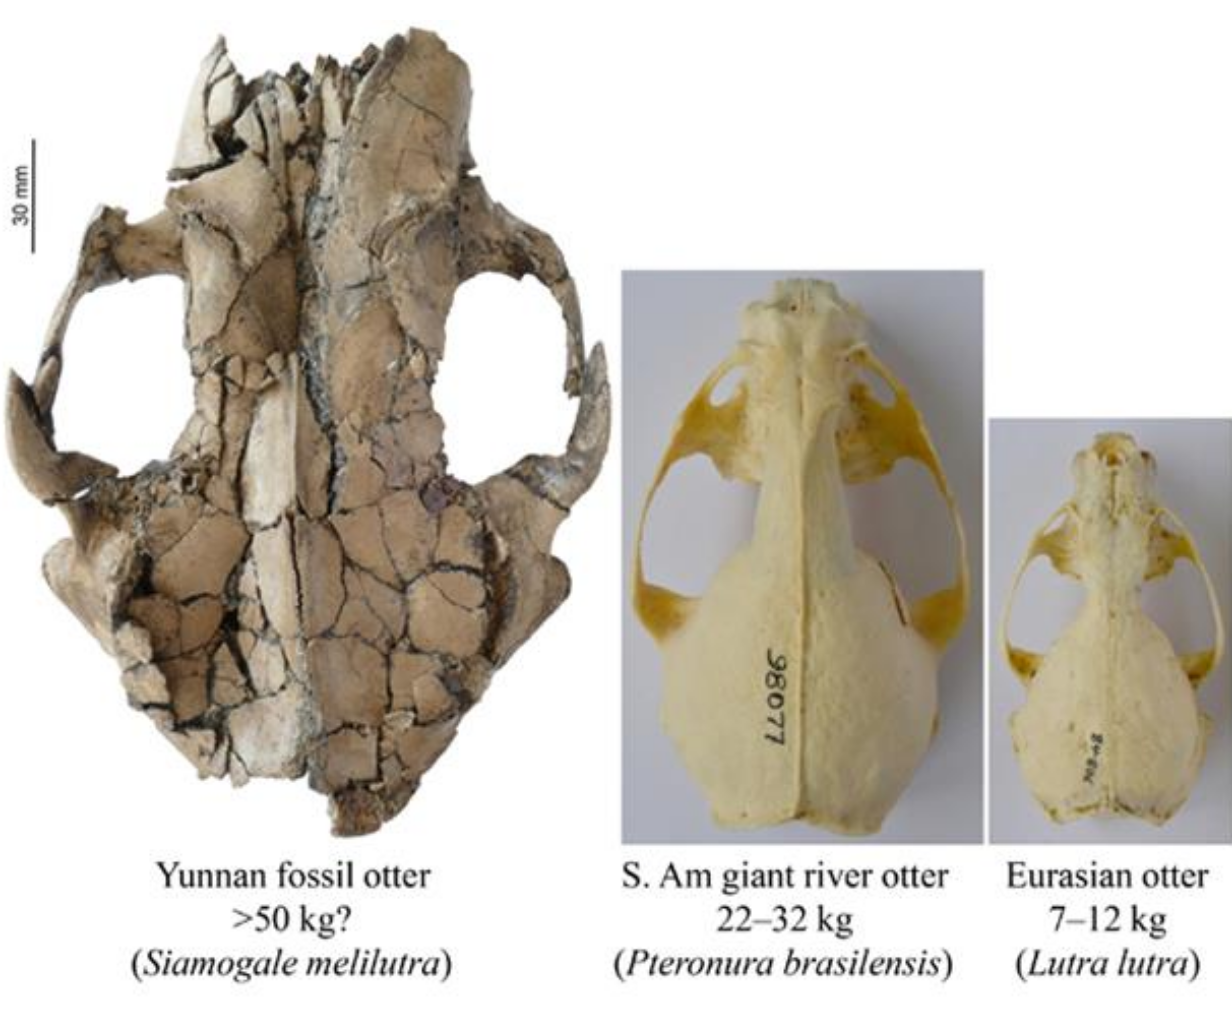 A scale size comparison of the newly-discovered otter skull compared to modern-day otter skulls.